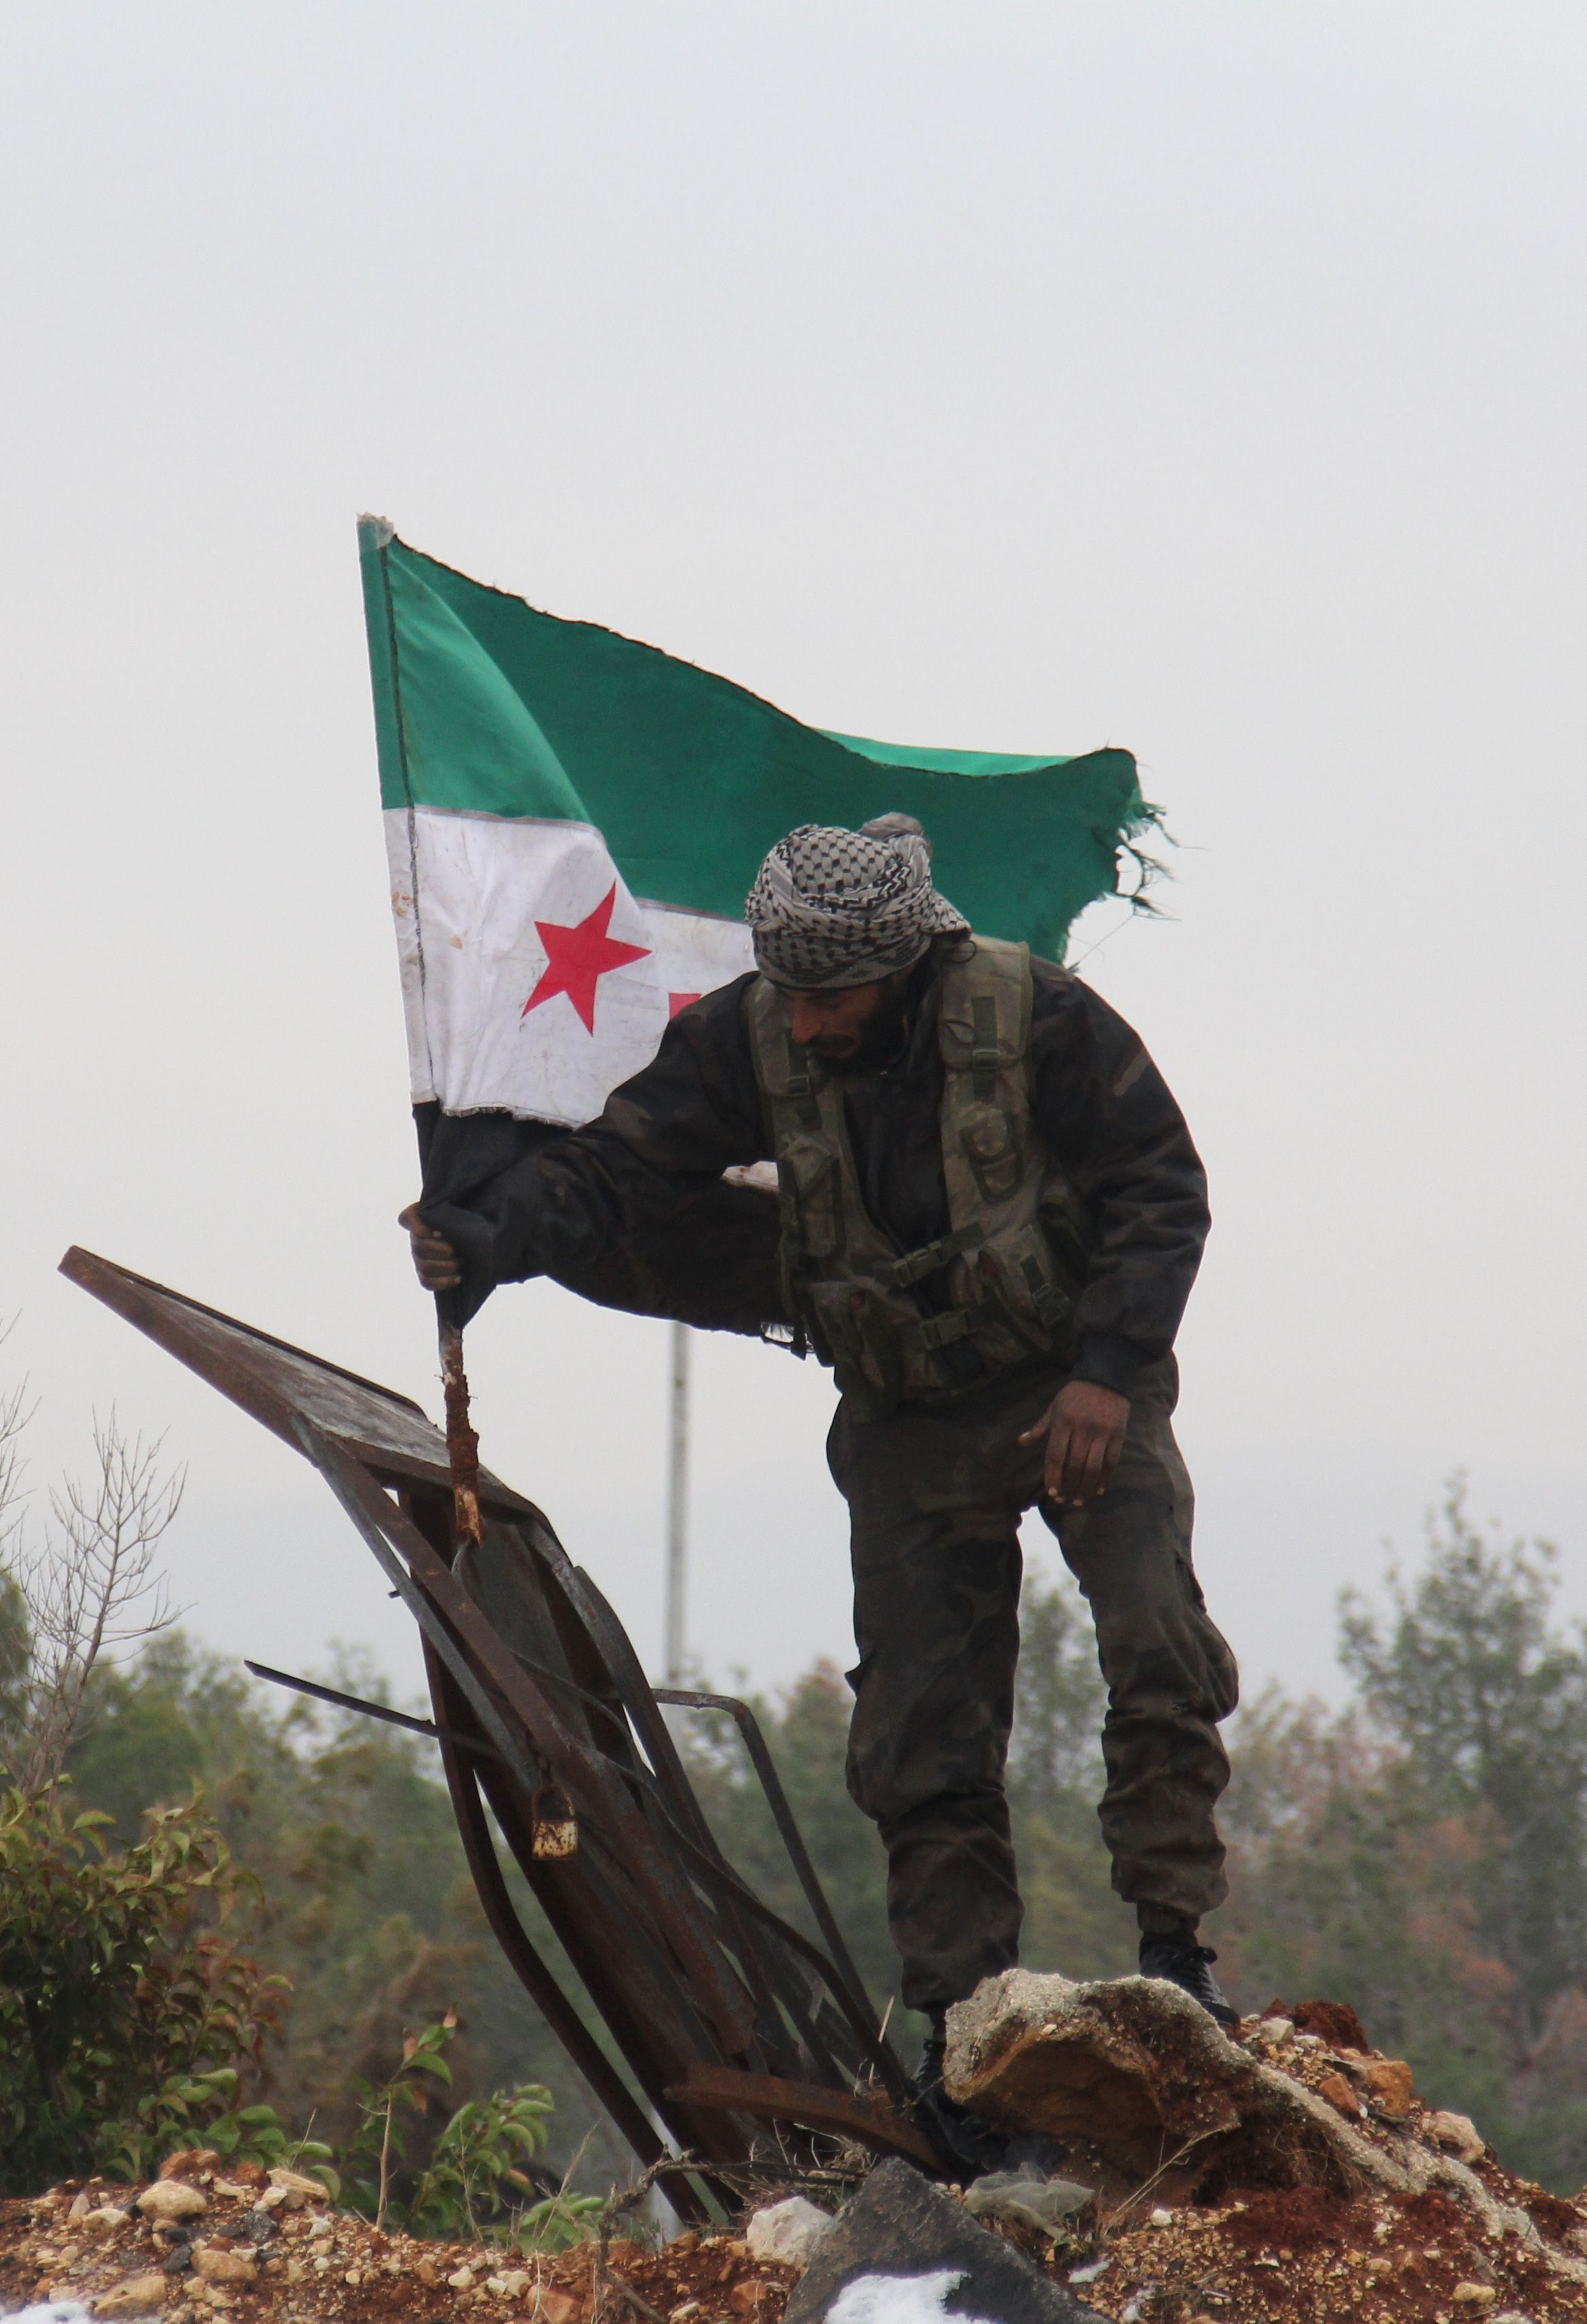 Convoys carried opposition fighters out of the last rebel pocket of Aleppo on